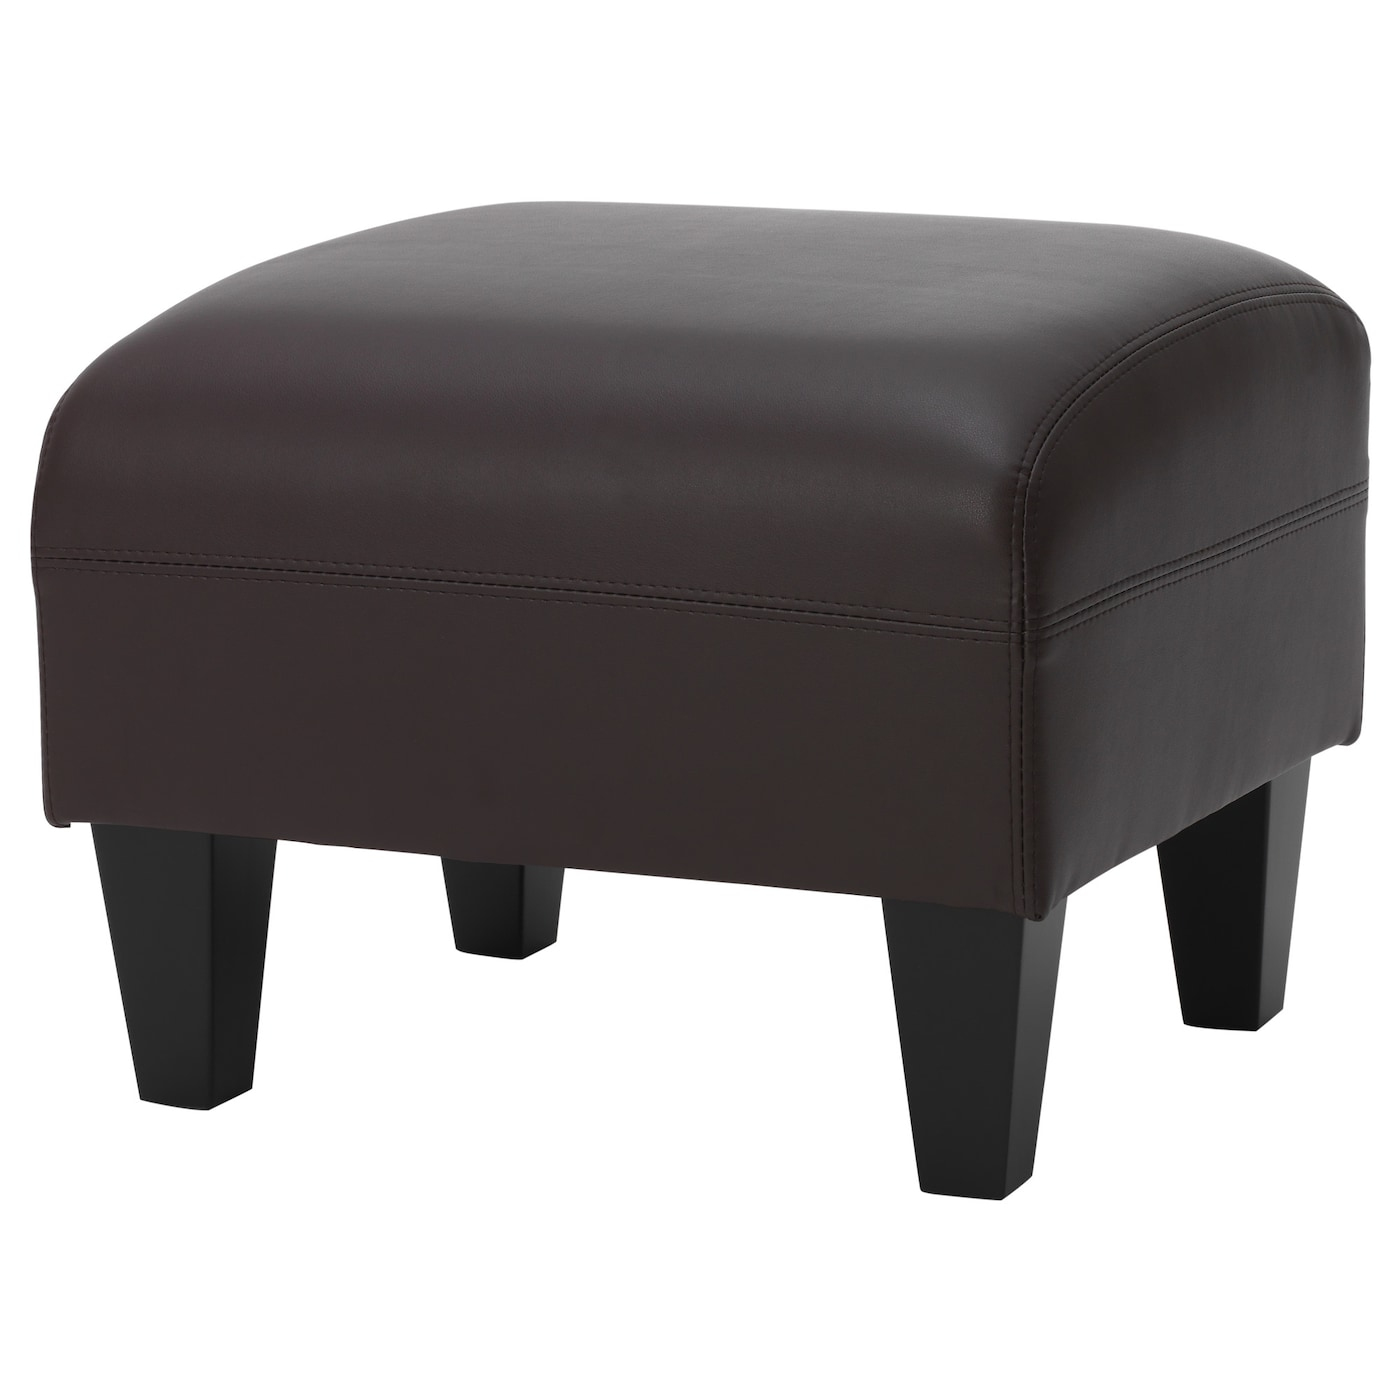 Swell Ottoman Jappling Kimstad Dark Brown Evergreenethics Interior Chair Design Evergreenethicsorg